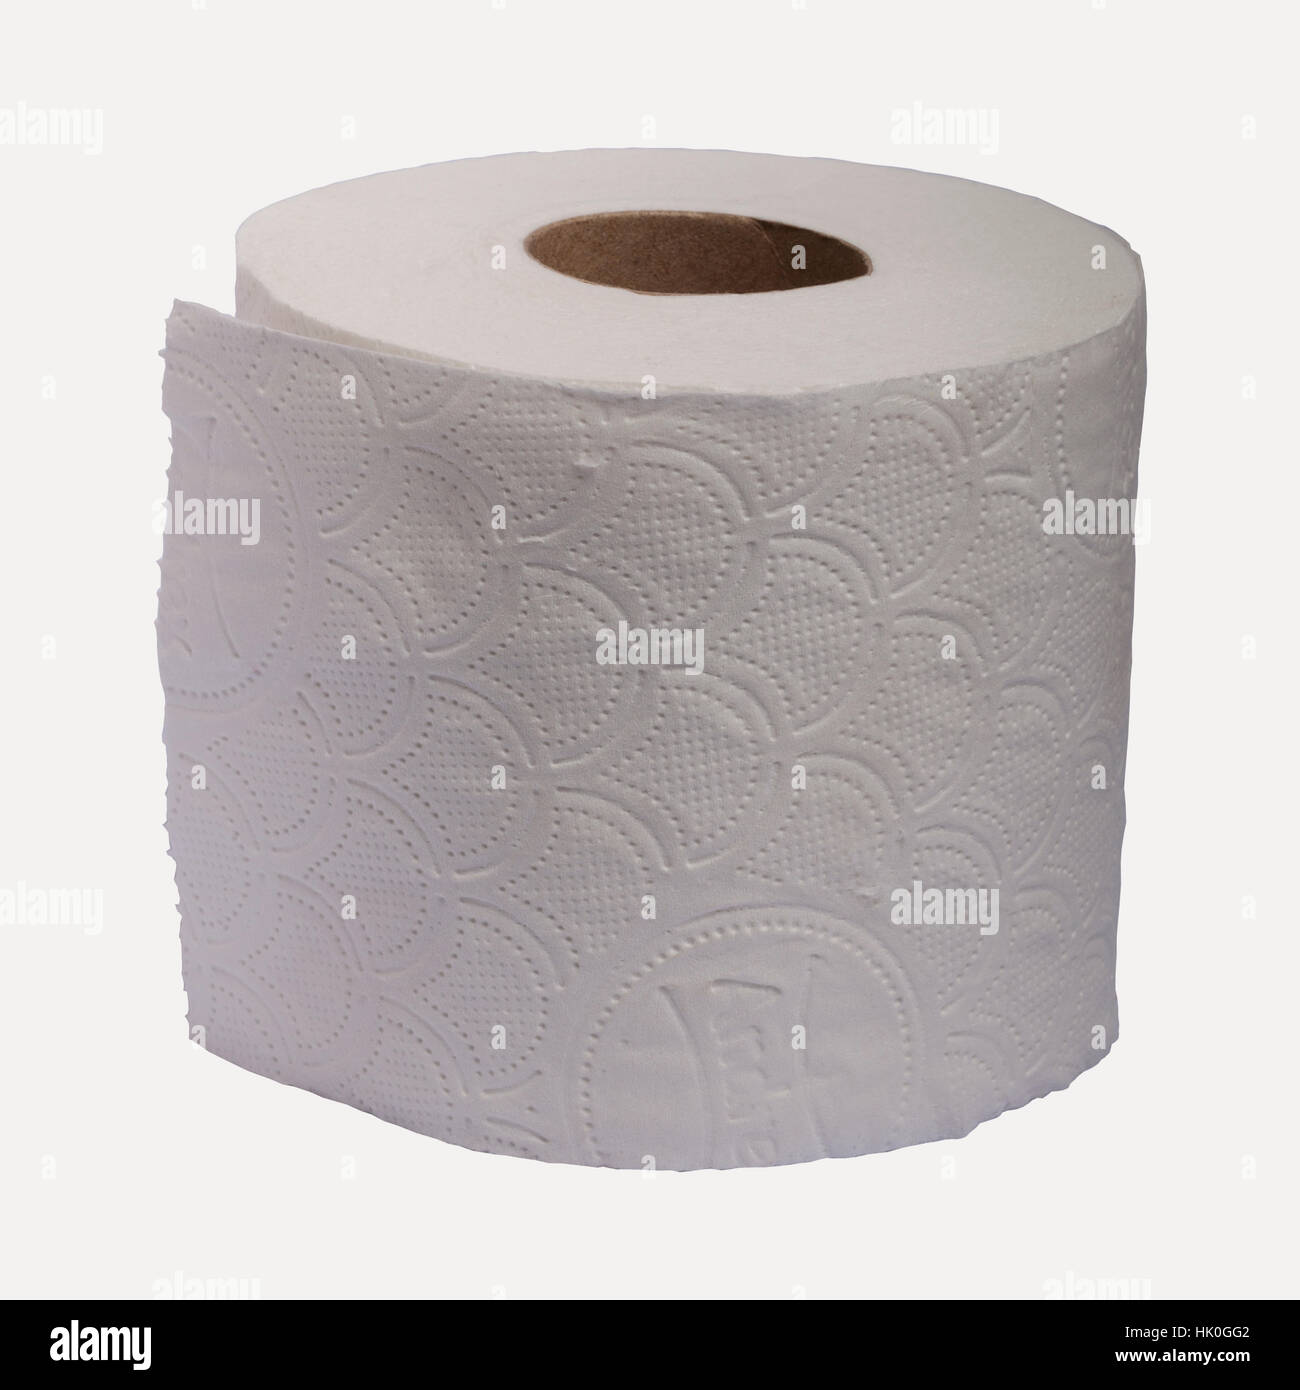 An Andrex quilts toilet roll on a white background - Stock Image